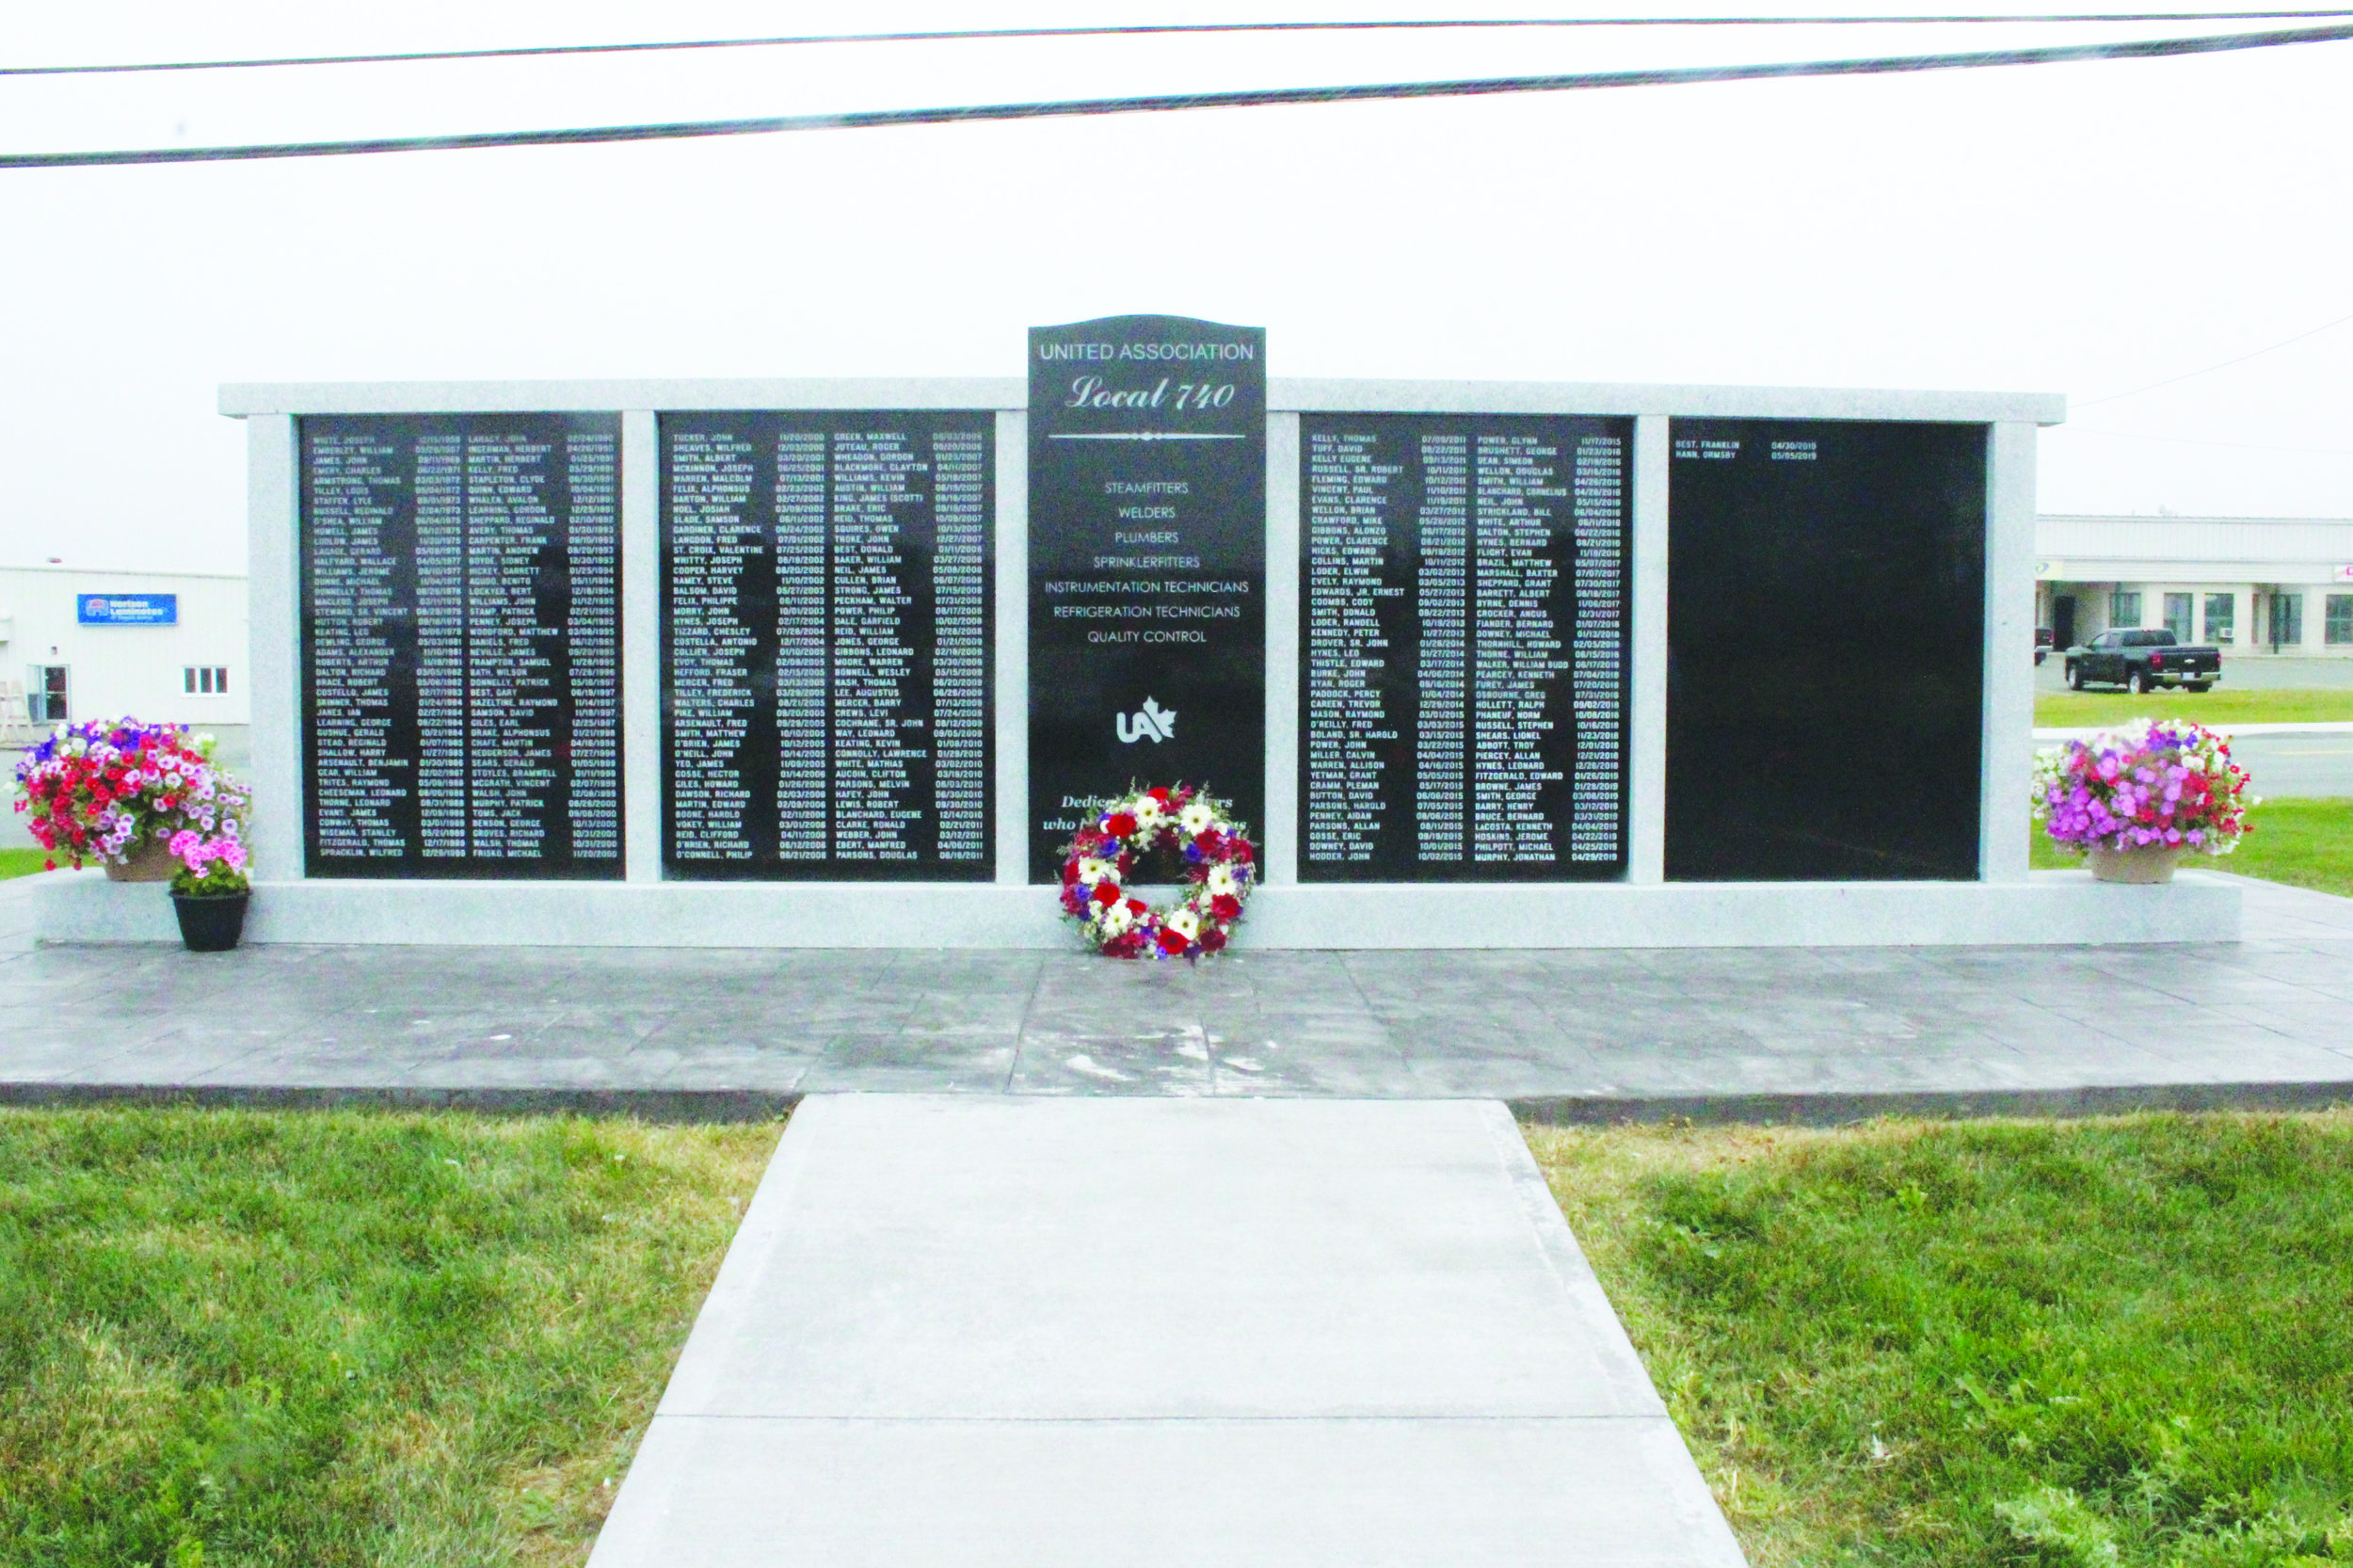 261 names adorn the Plumbers' memorial wall, with more names to be updated annually.